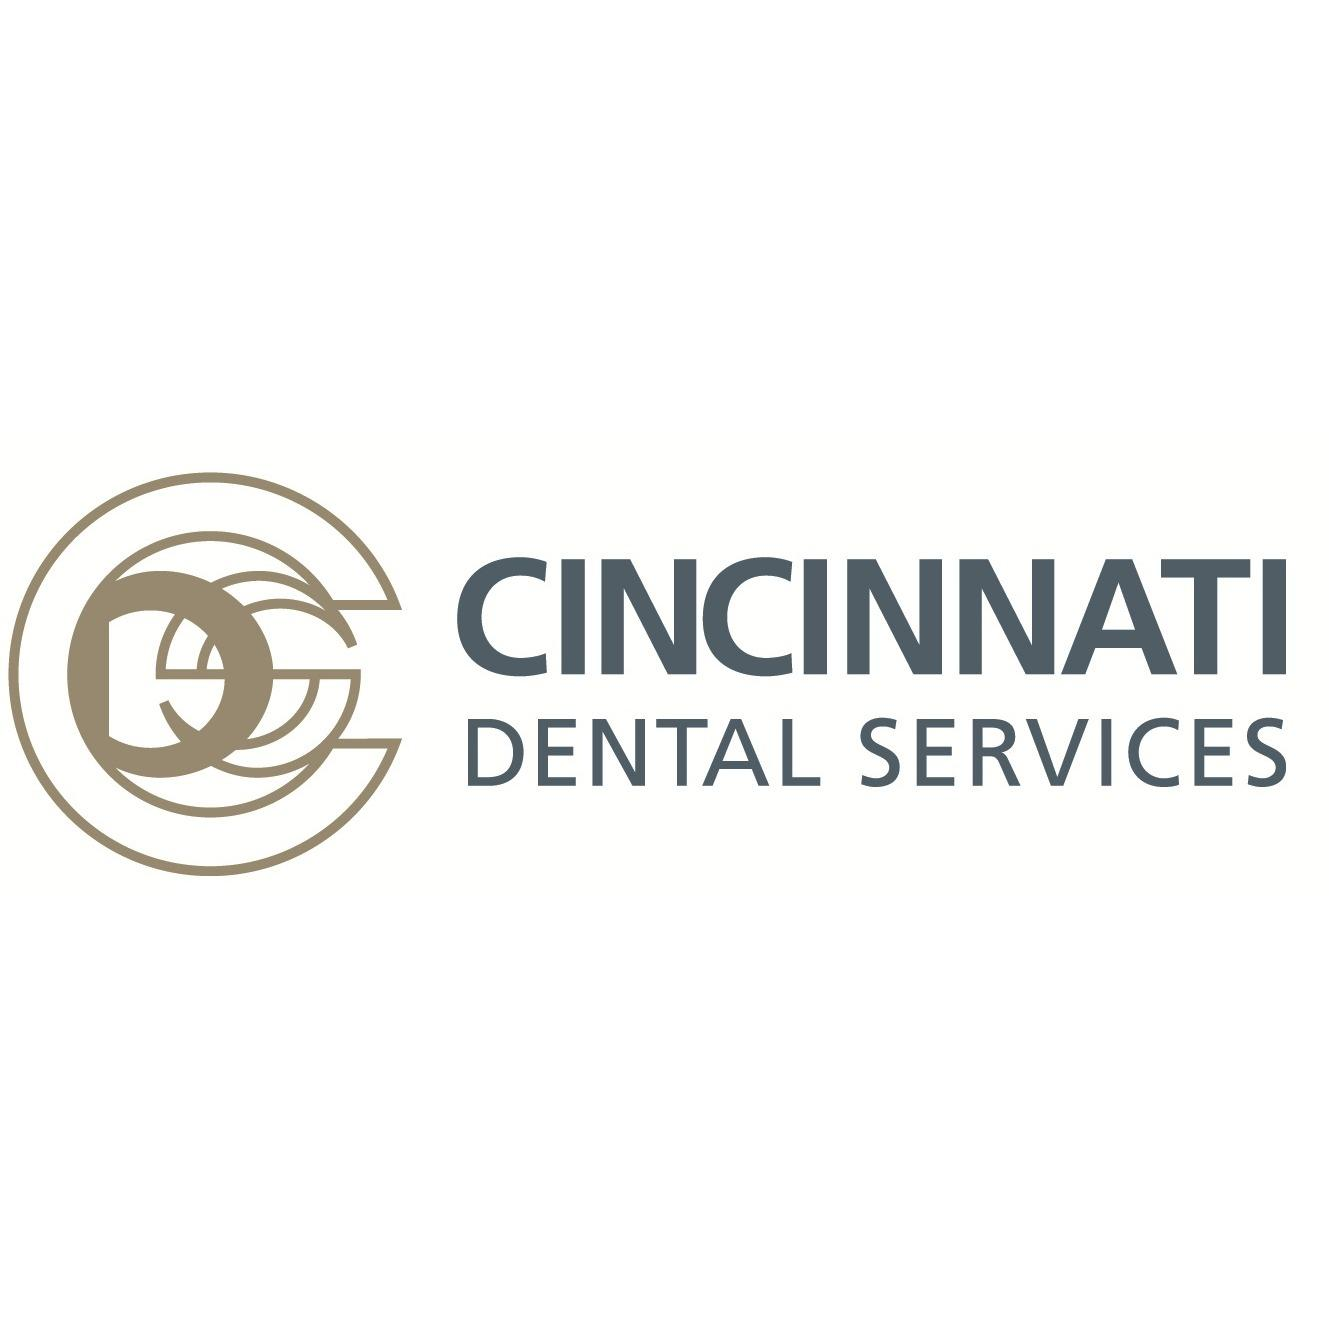 Mary E. Hunter, DDS - Cincinnati Dental Services